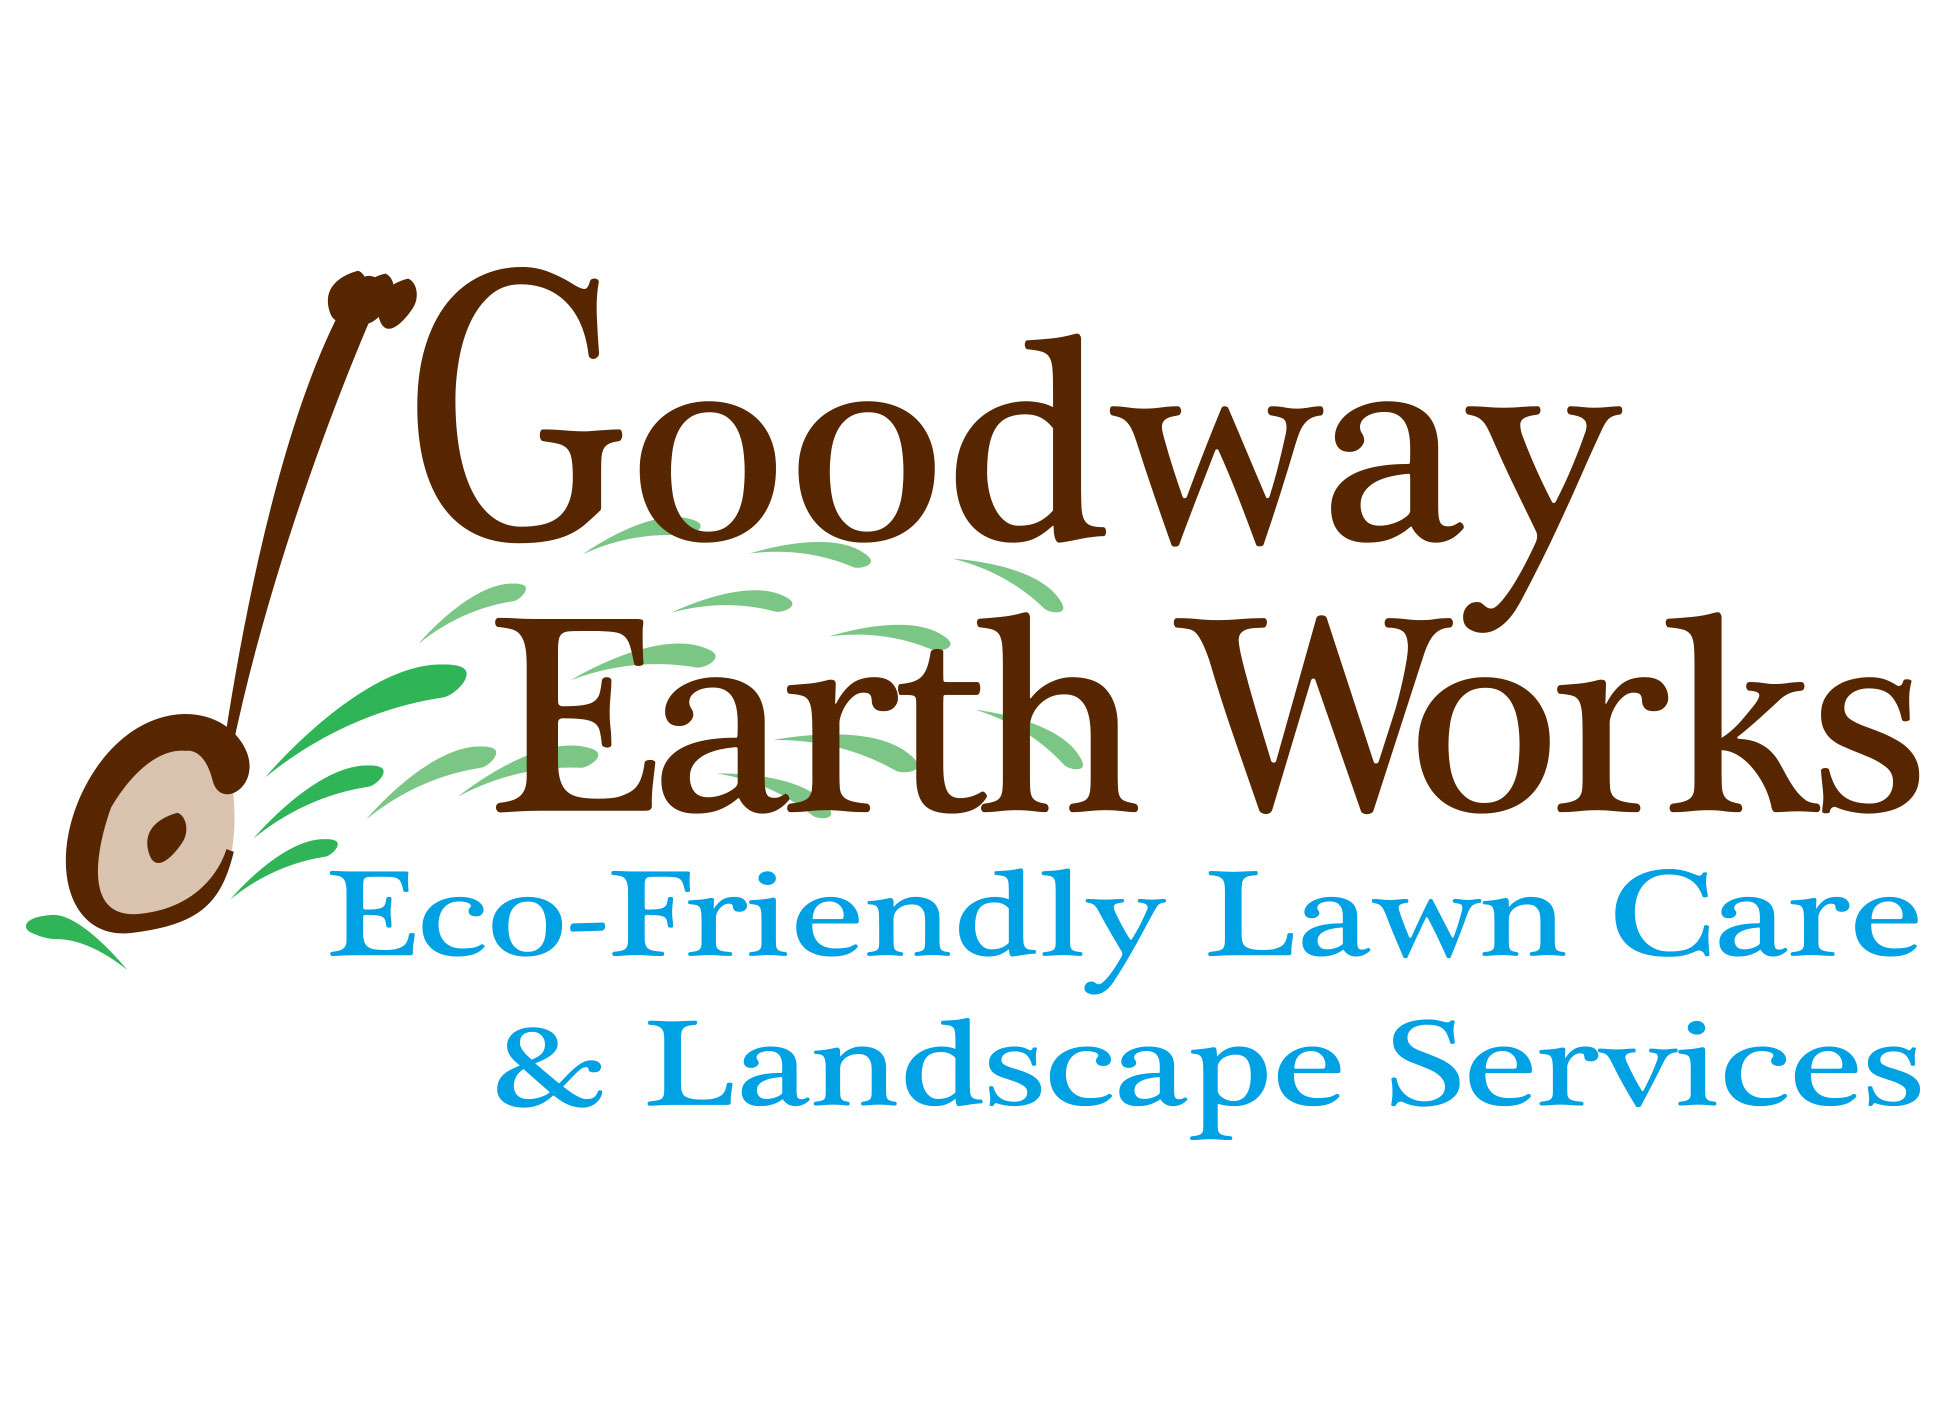 Image of business card front designed and created for Larry Goodwin of Goodway Earth Works Eco-Friendly Lawn Care Services.